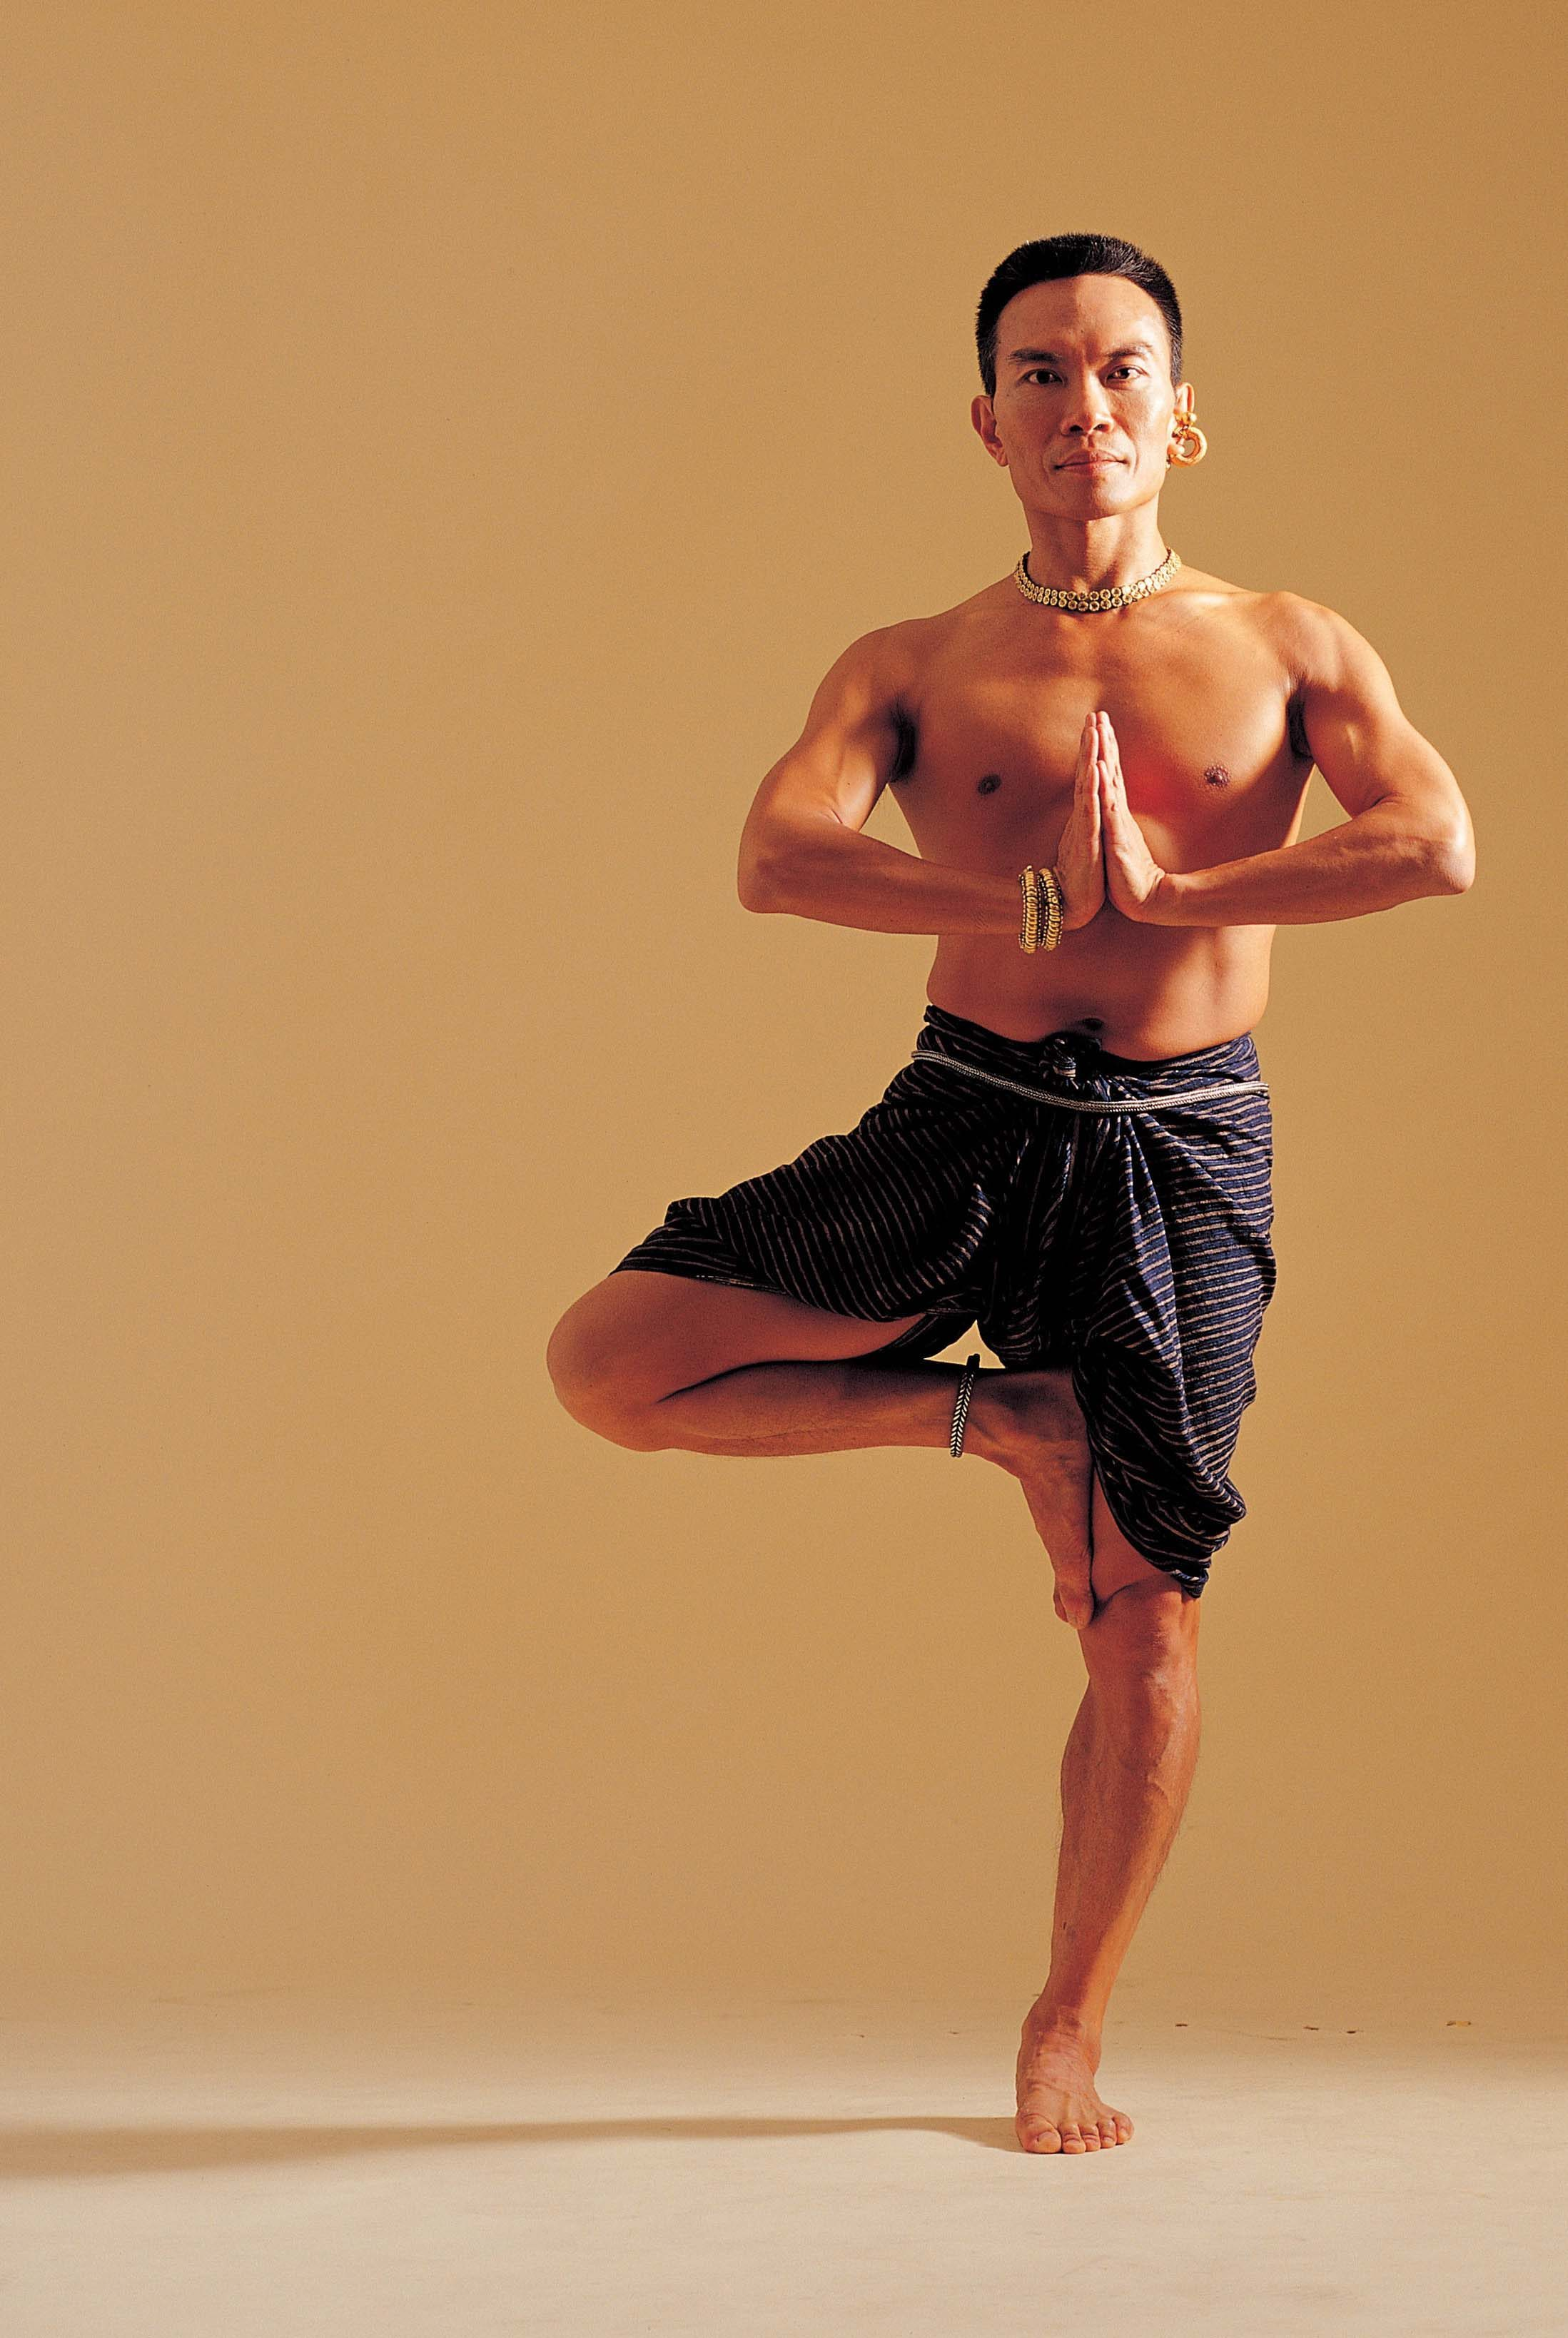 John Ang does exercises as part of yoga practice in what he sees as a journey to try to understand himself.